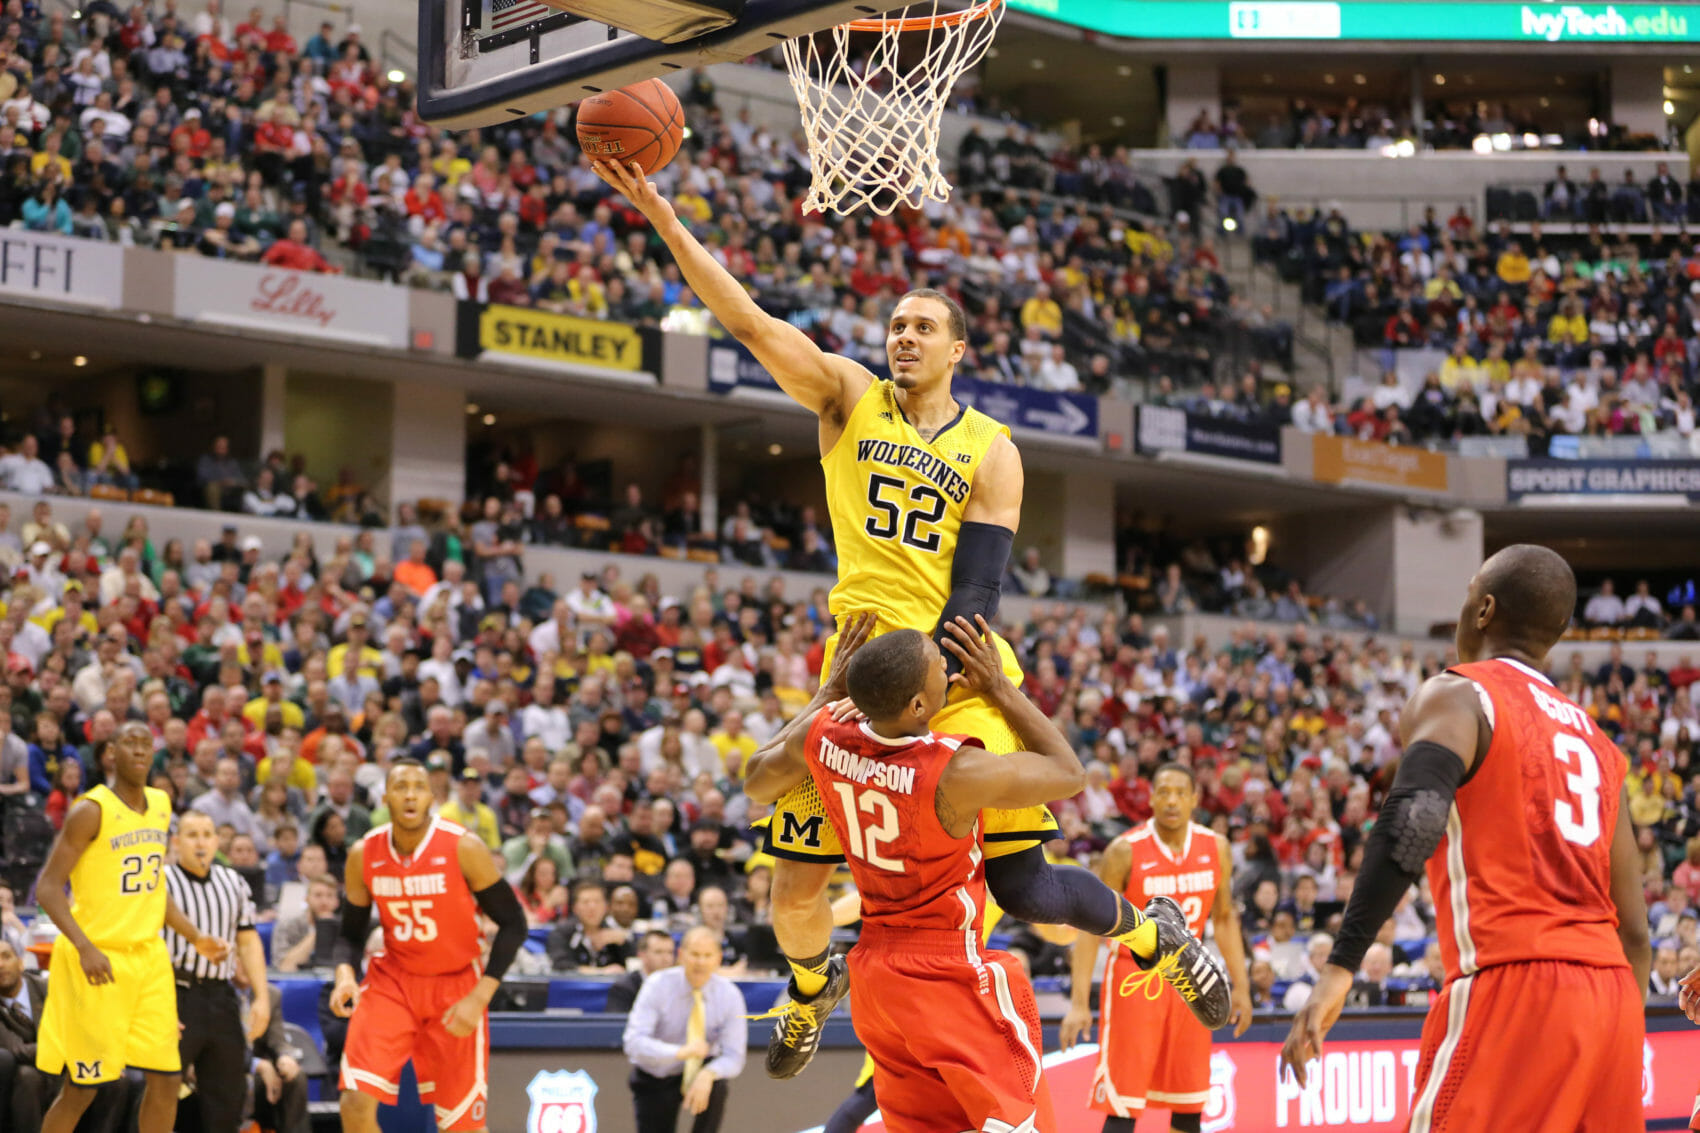 Michigan 72, Ohio State 69-21